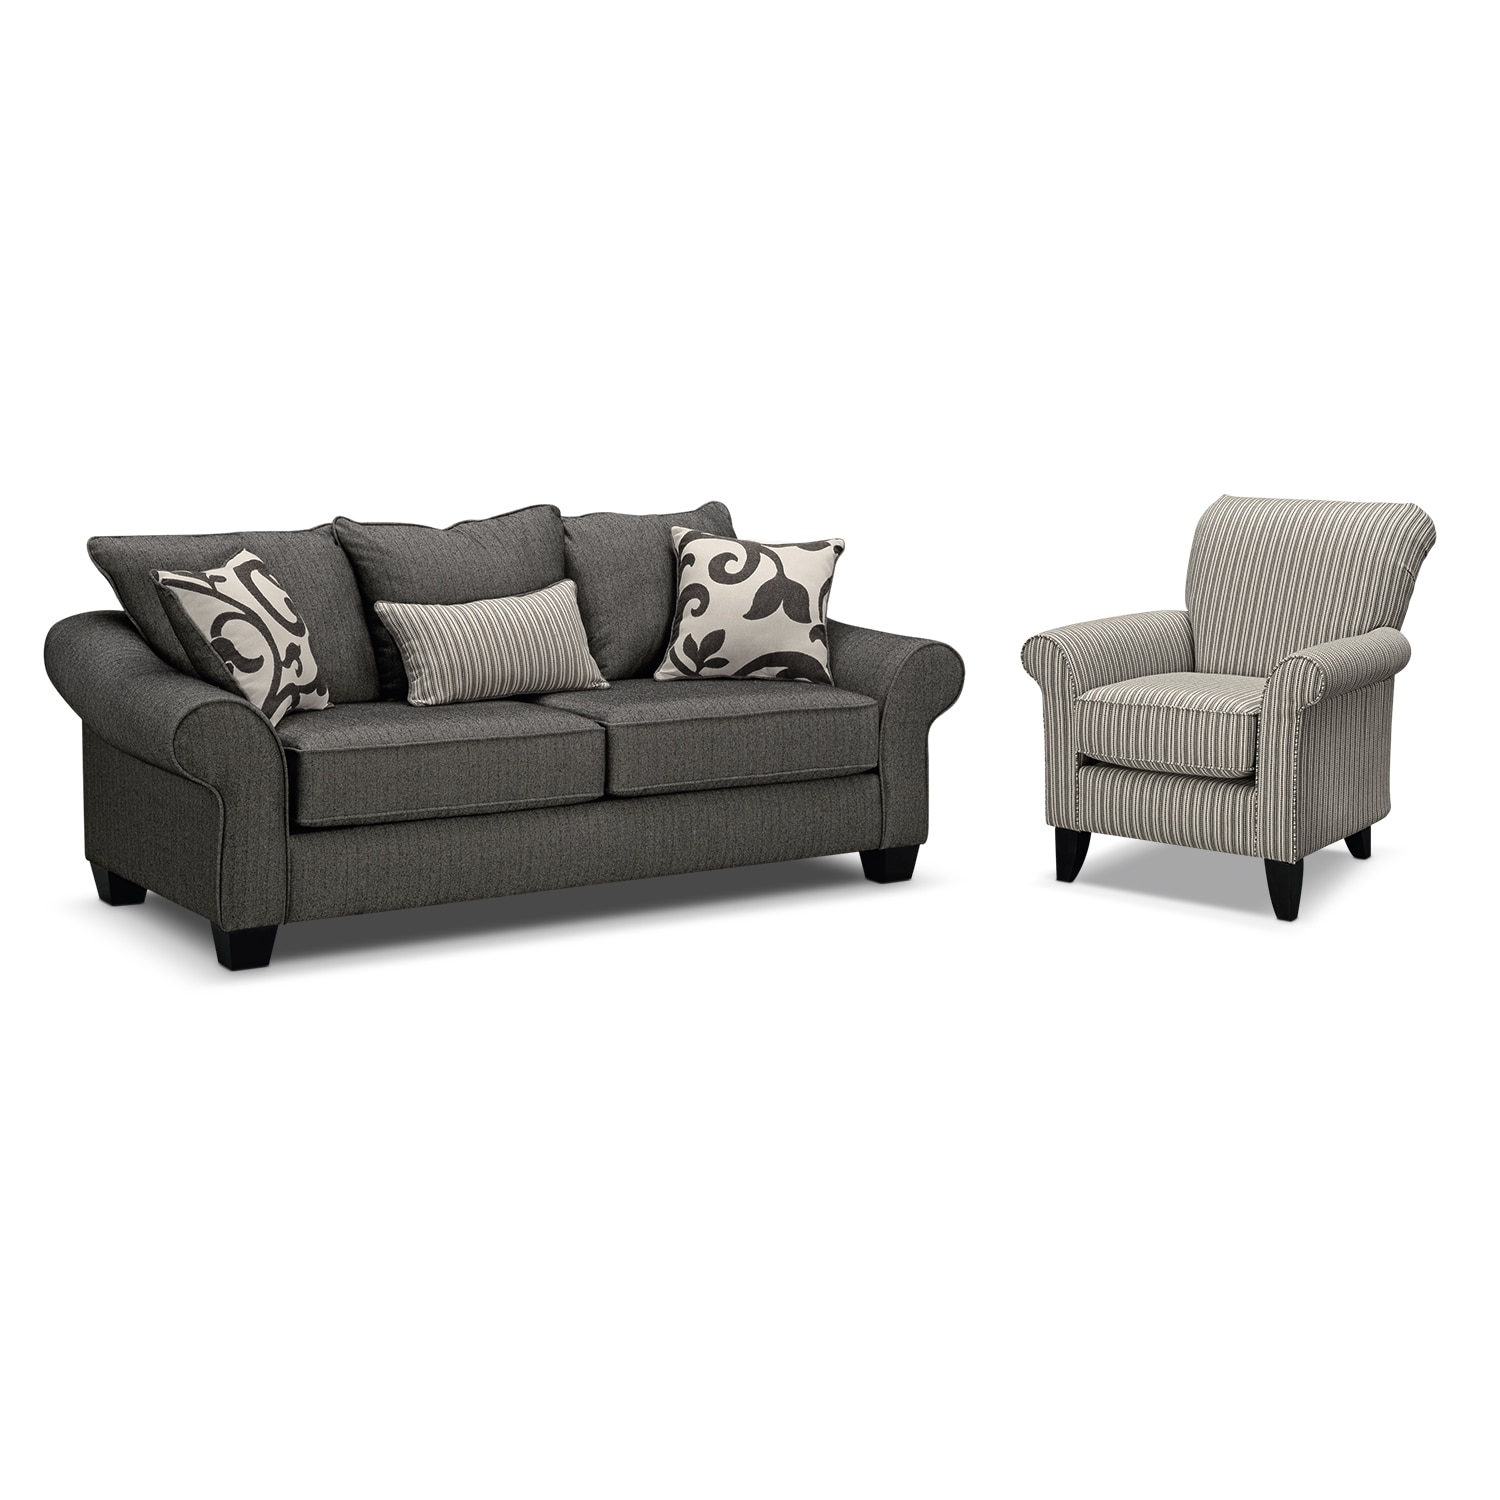 Colette Full Innerspring Sleeper Sofa and Accent Chair Set  : 290003 from www.valuecityfurniture.com size 1500 x 1500 jpeg 388kB